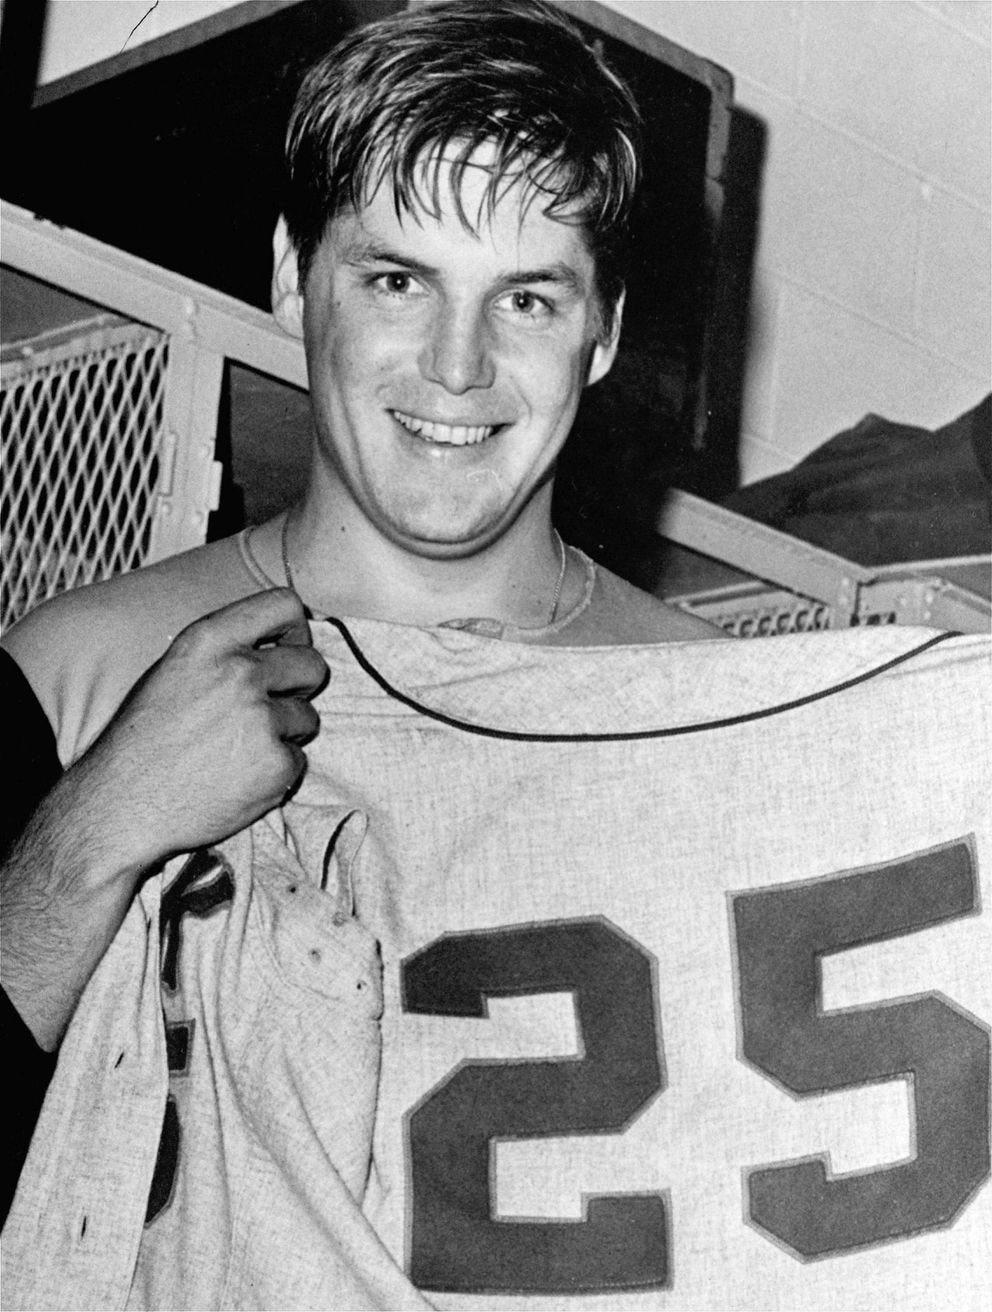 FILE - In this Sept. 27, 1969, file photo, New York Mets pitcher Tom Seaver holds up a No. 25 Mets uniform after winning his 25th victory of the year, against the Philadelphia Phillies in Philadelphia. (AP Photo, File)